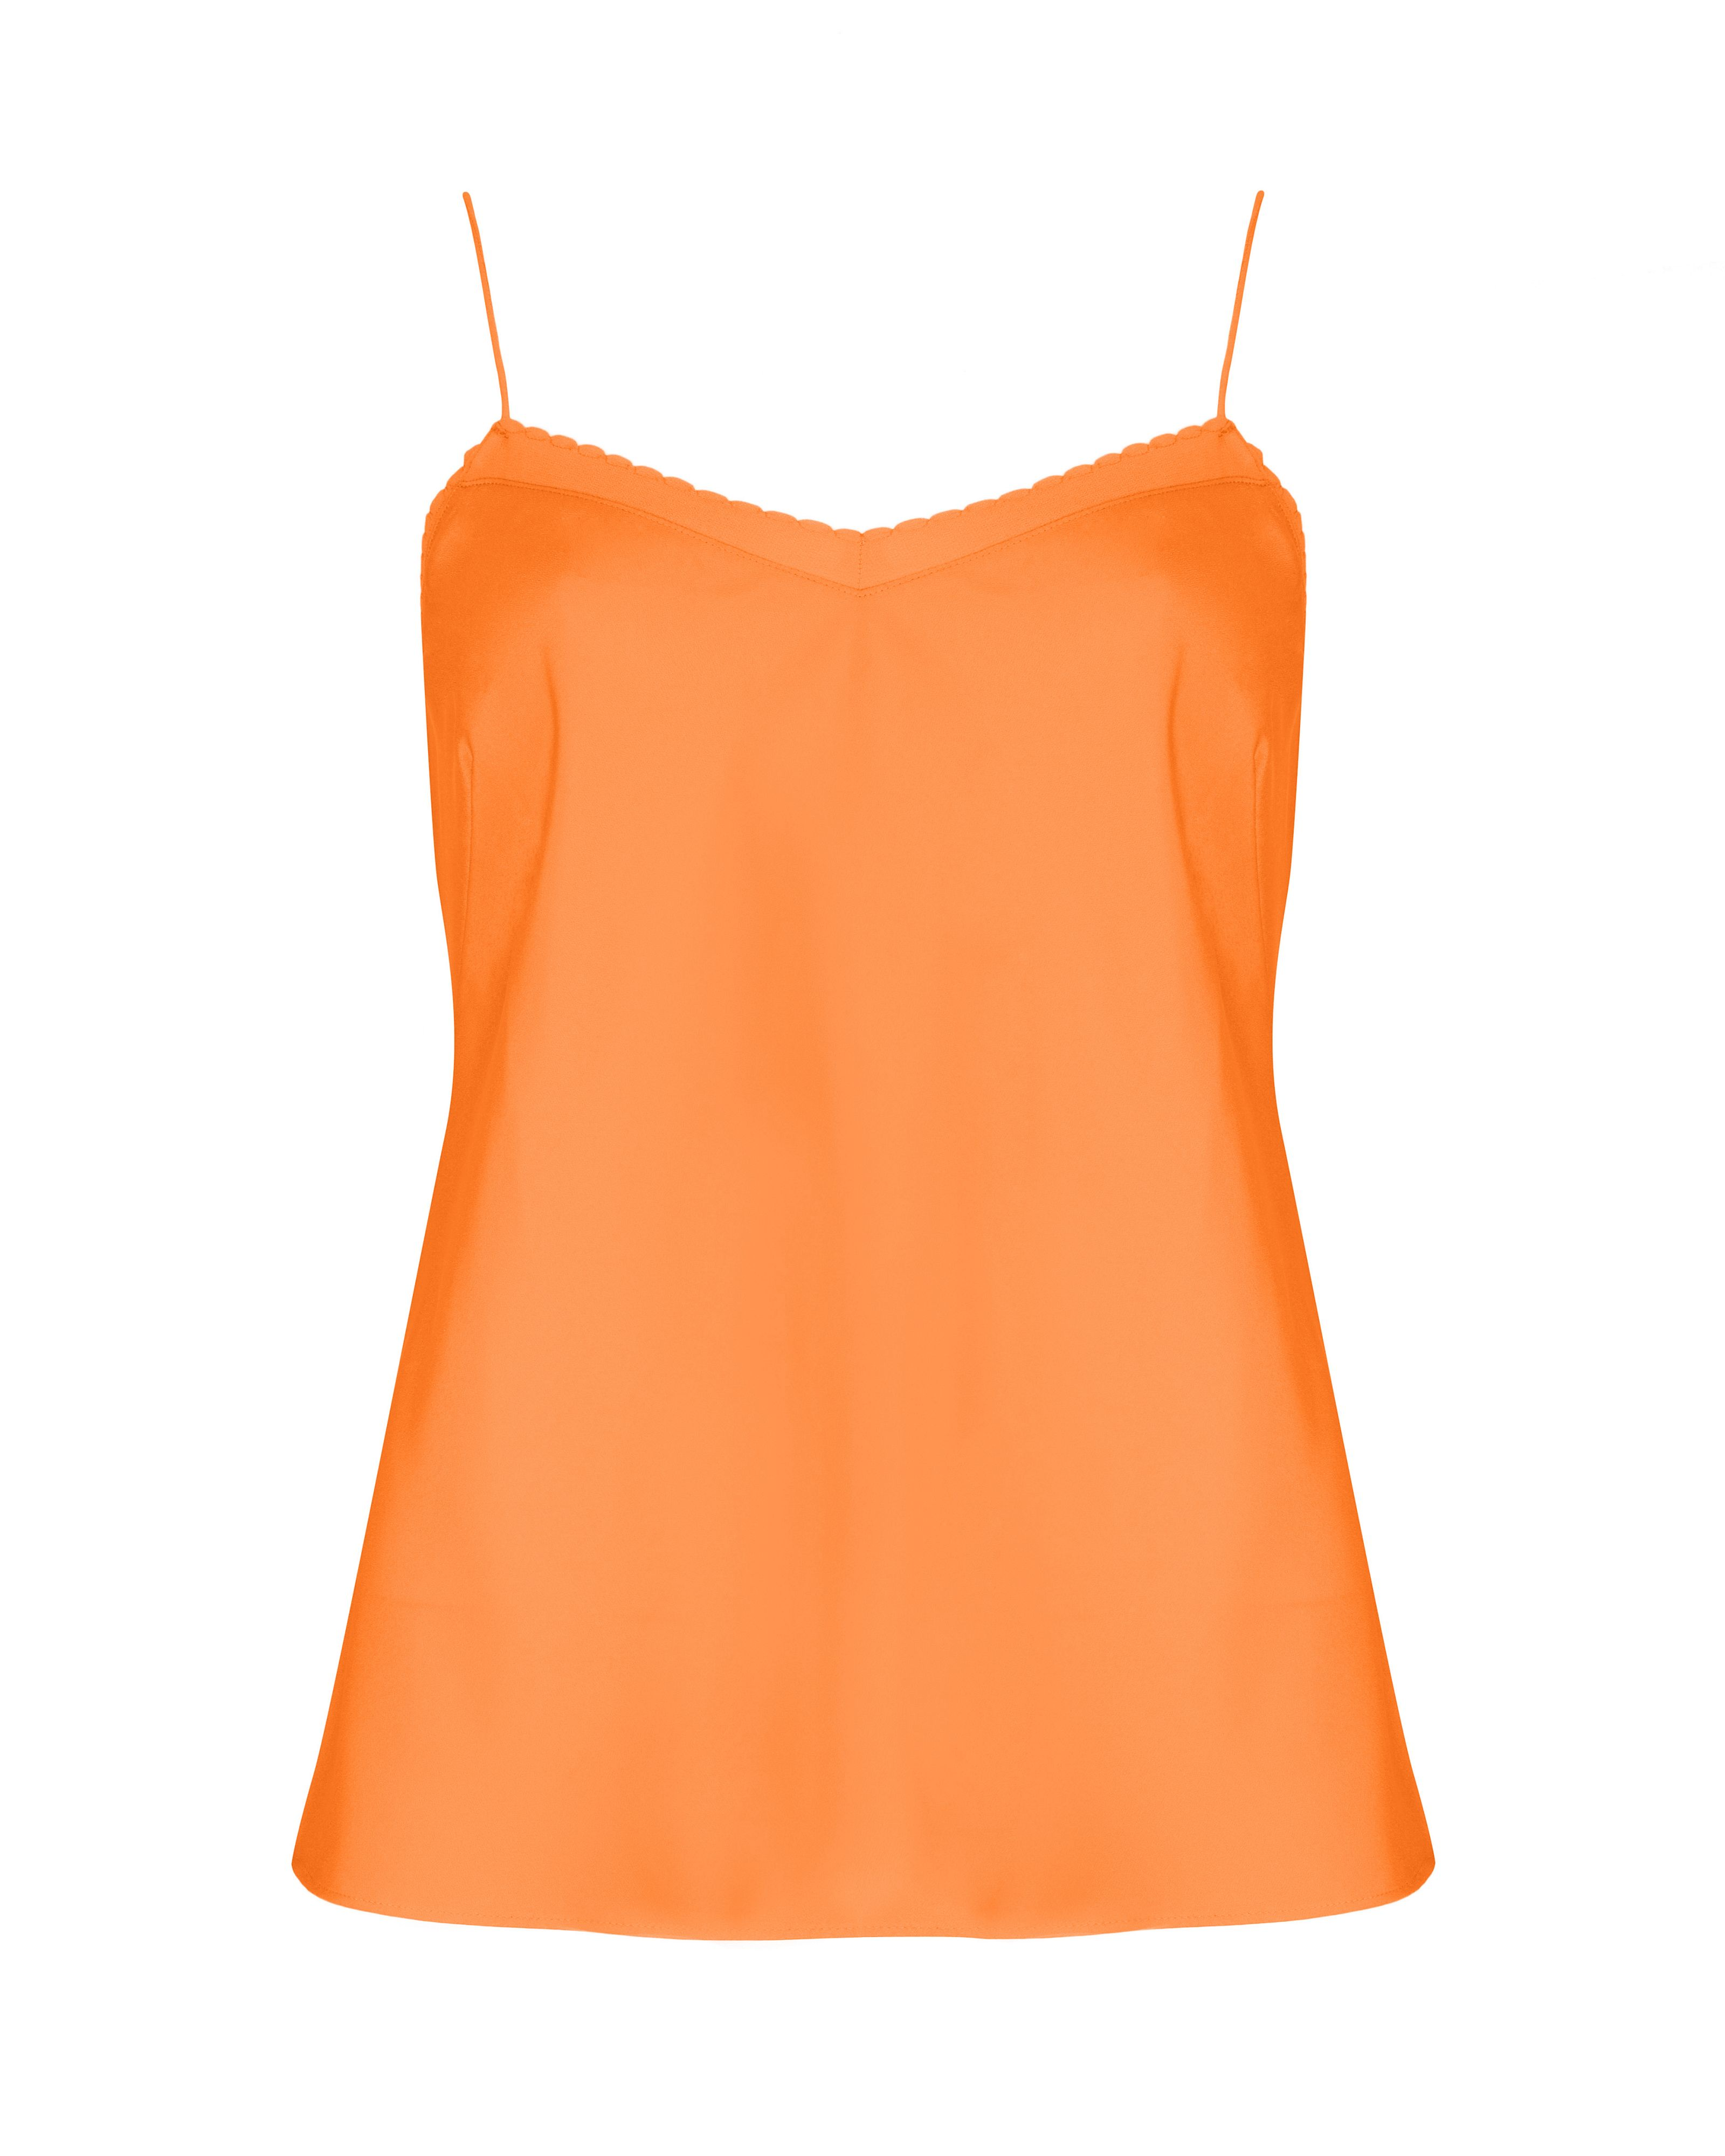 Tissa scalloped edge camisole